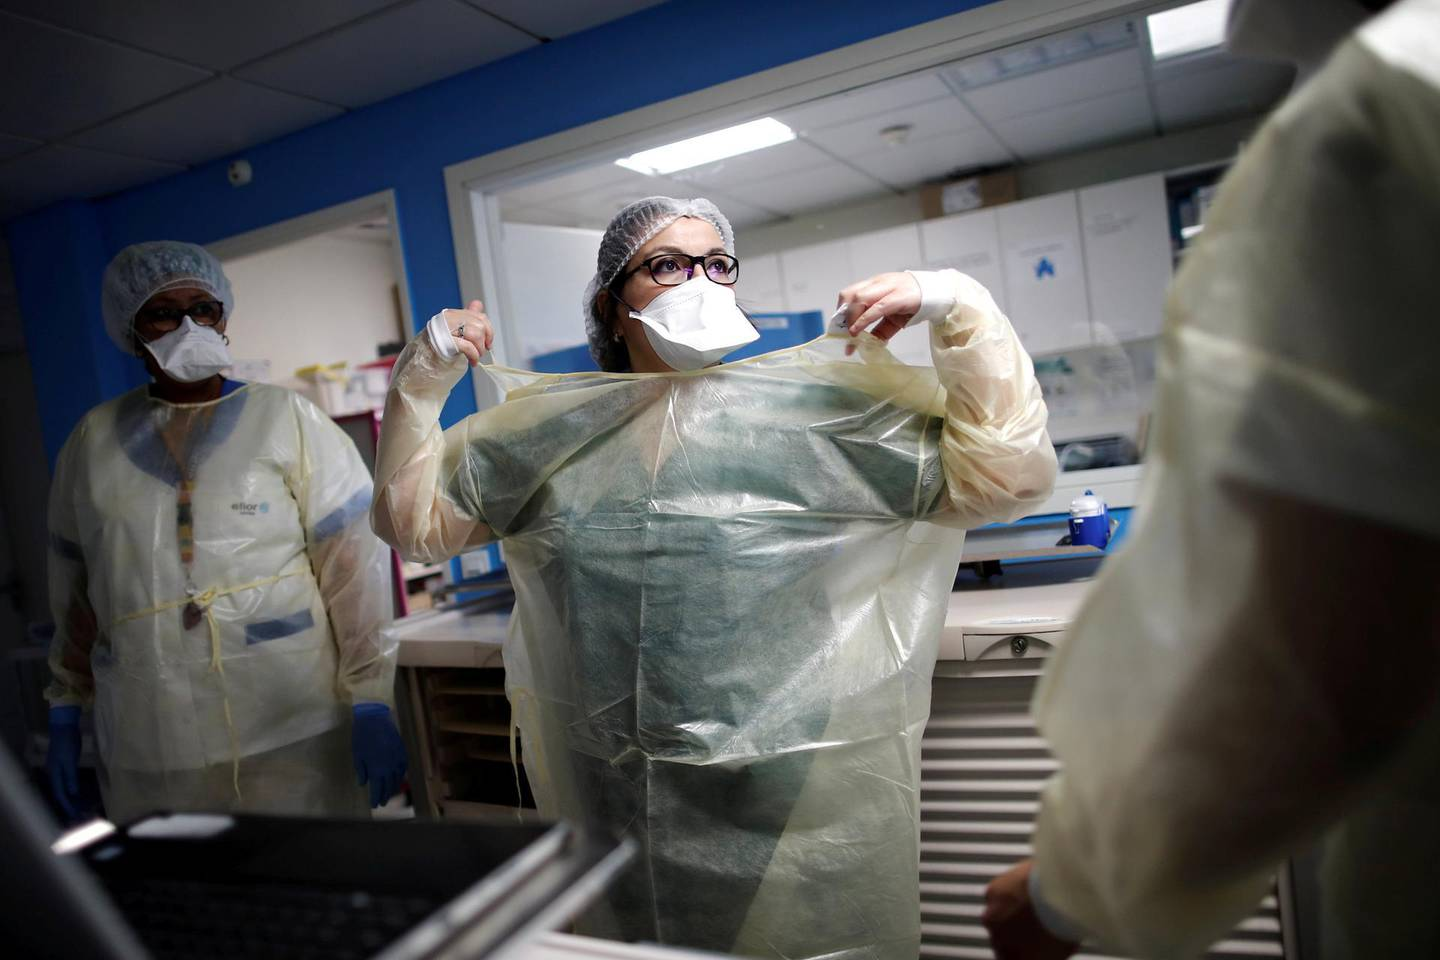 Doctor Widad Abdi works in the Intensive Care Unit (ICU) where patients suffering from the coronavirus disease (COVID-19) are treated at the Clinique de l'Estree - ELSAN private hospital in Stains, near Paris, France, March 18, 2021.  REUTERS/Benoit Tessier